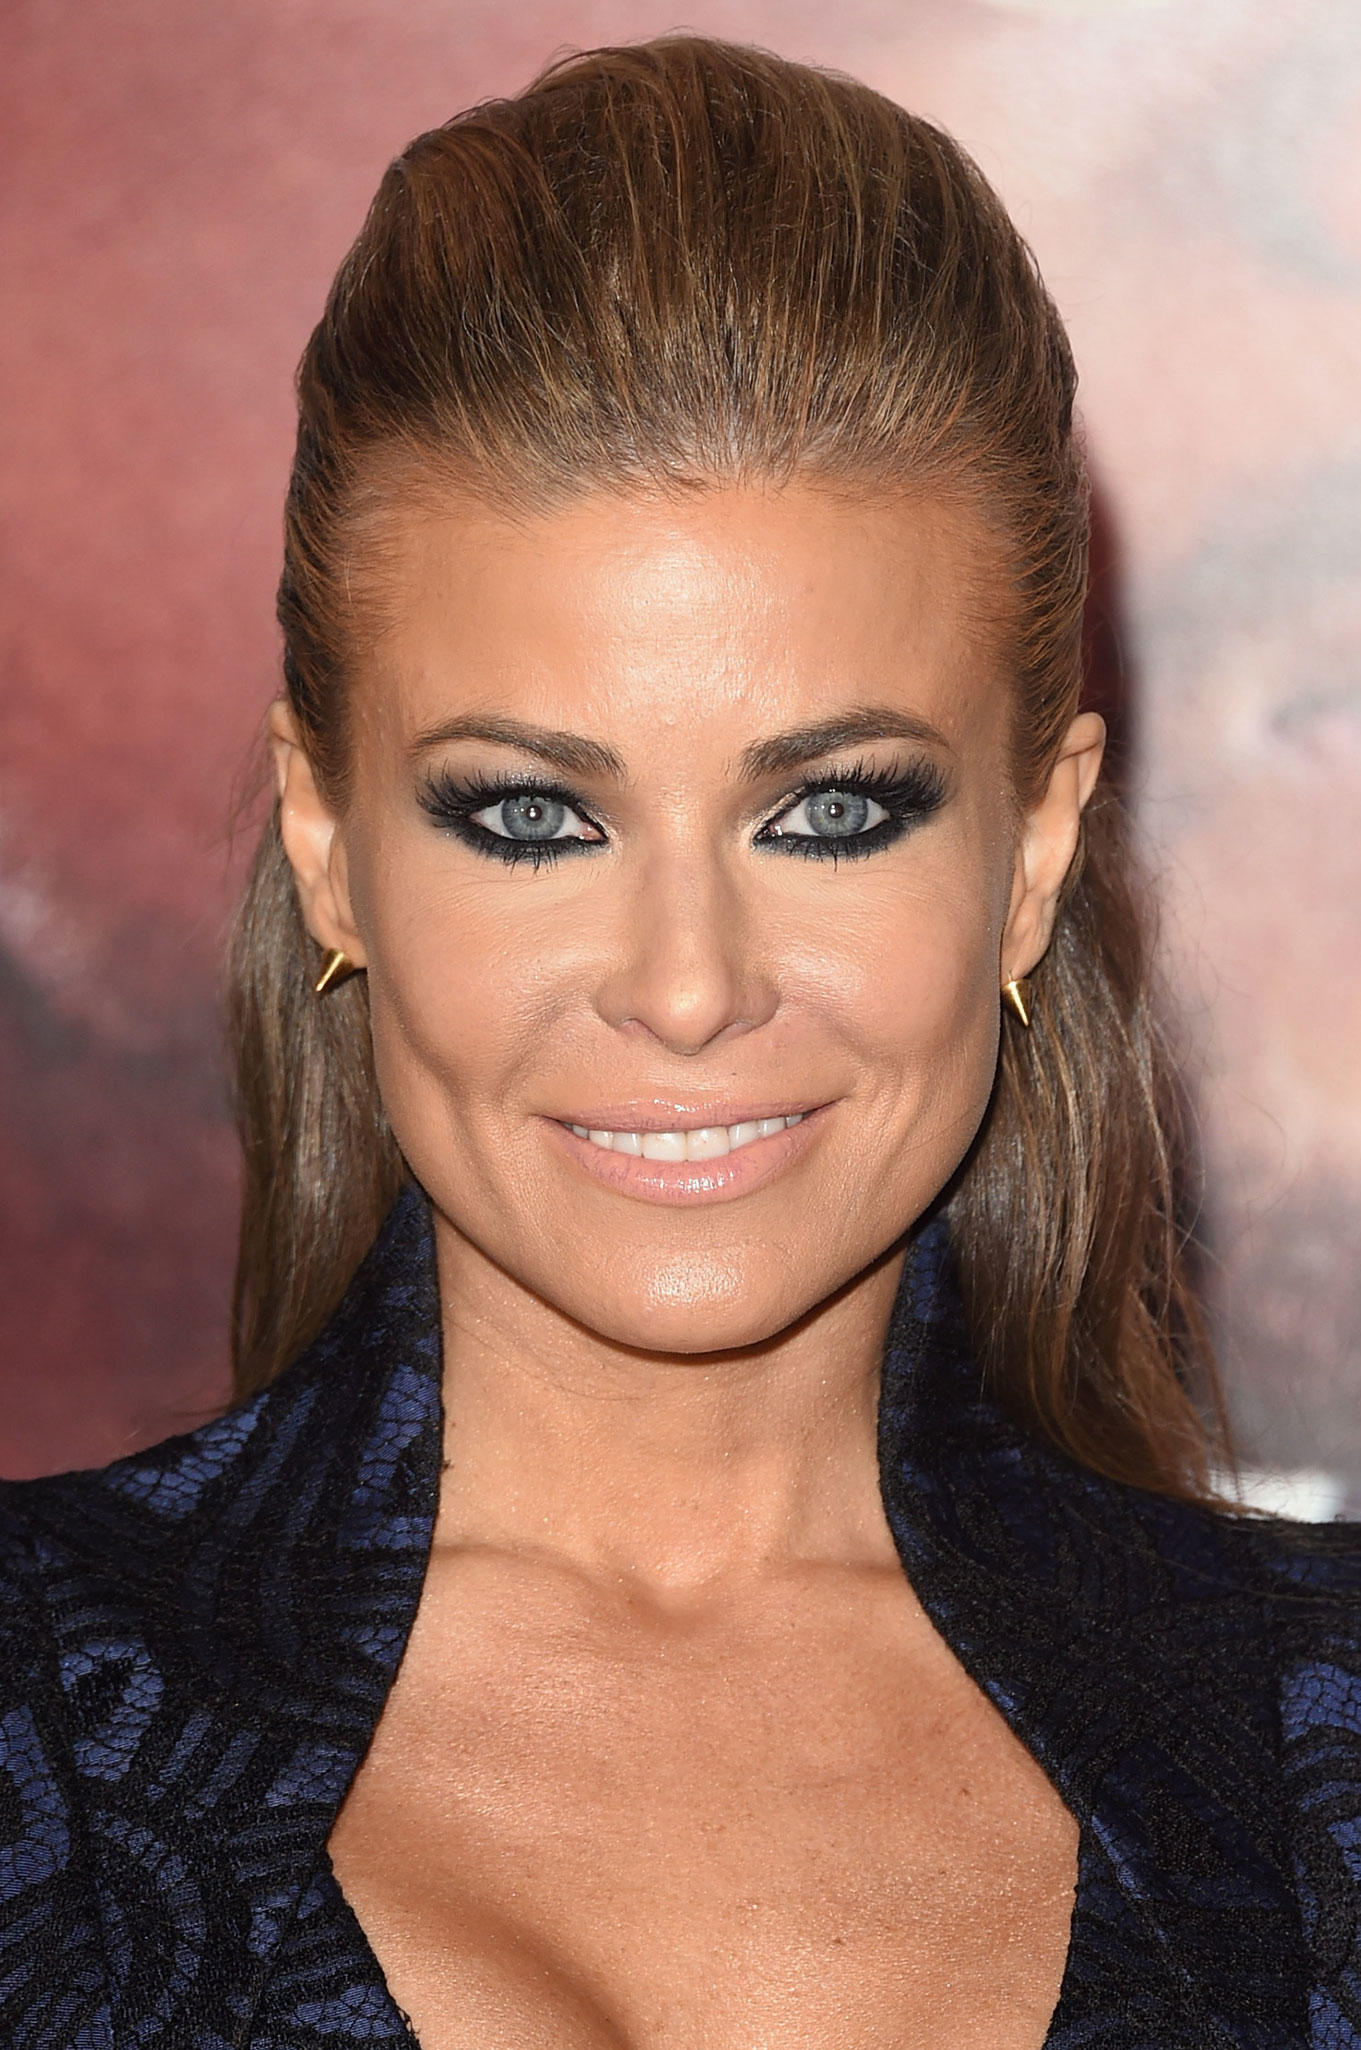 Discussion on this topic: Georgia Backus, carmen-electra/